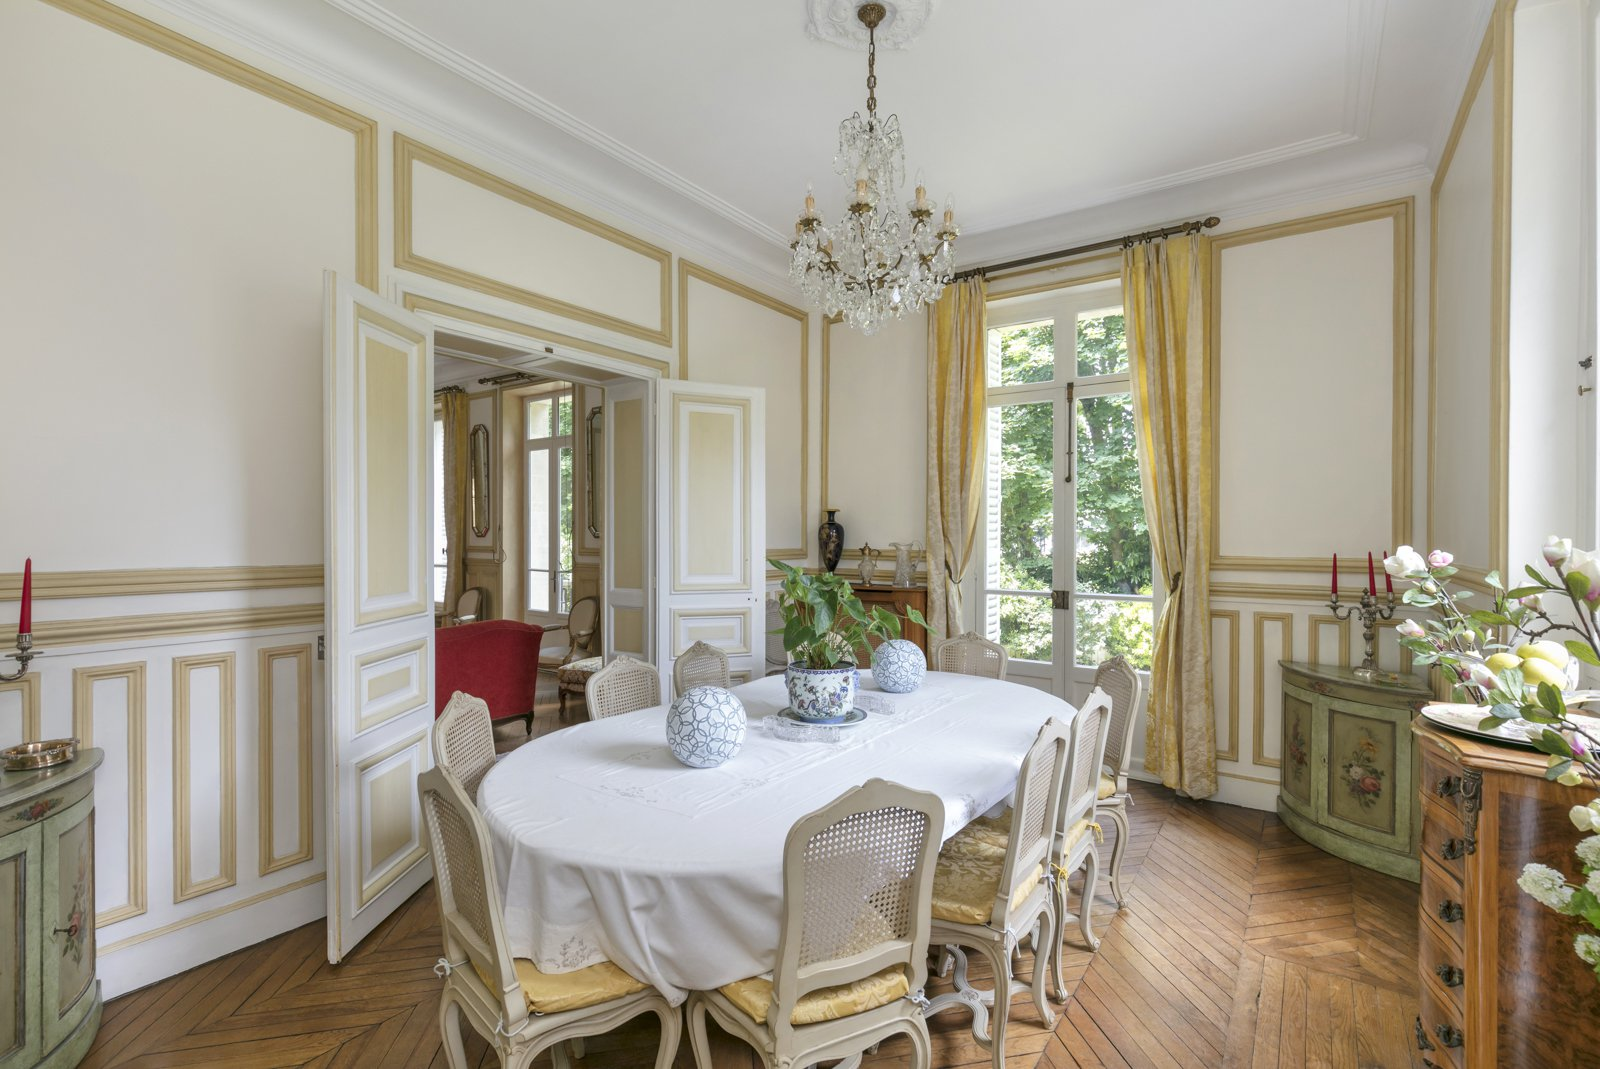 beautiful-napoleon-property-for-sale-le-vesinet-swimming-pool-secondary-house-garden-terrace-high-ceilings